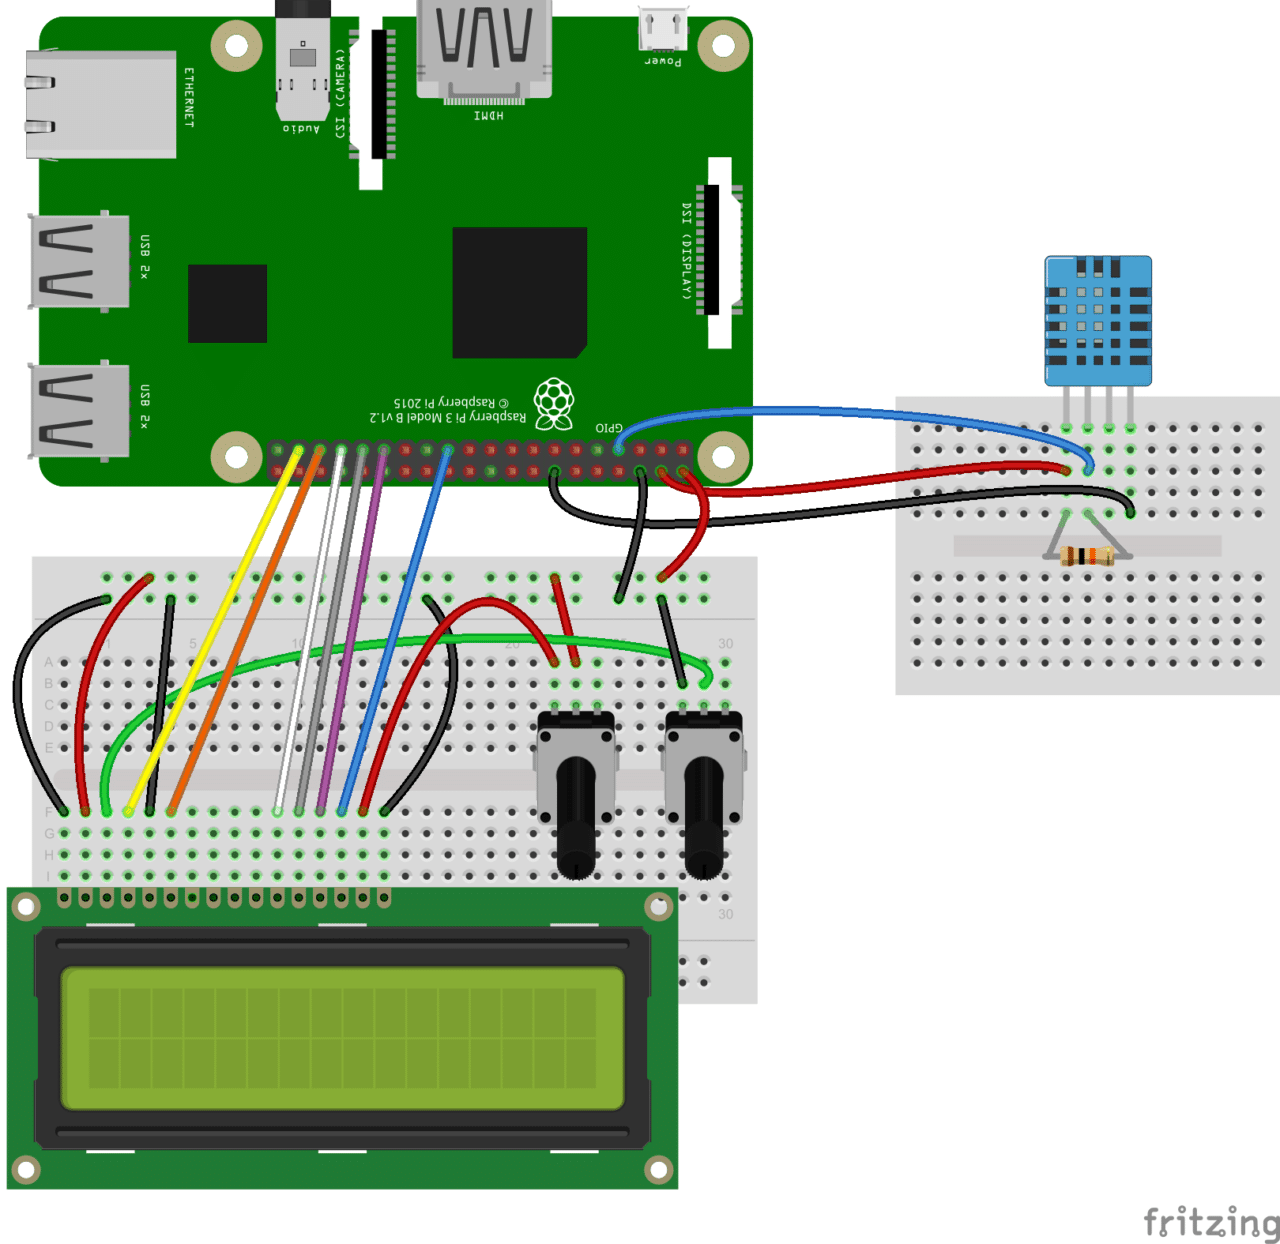 How To Set Up The Dht11 Humidity Sensor On Raspberry Pi Wiringpi Not Working Four Pin With Lcd Output